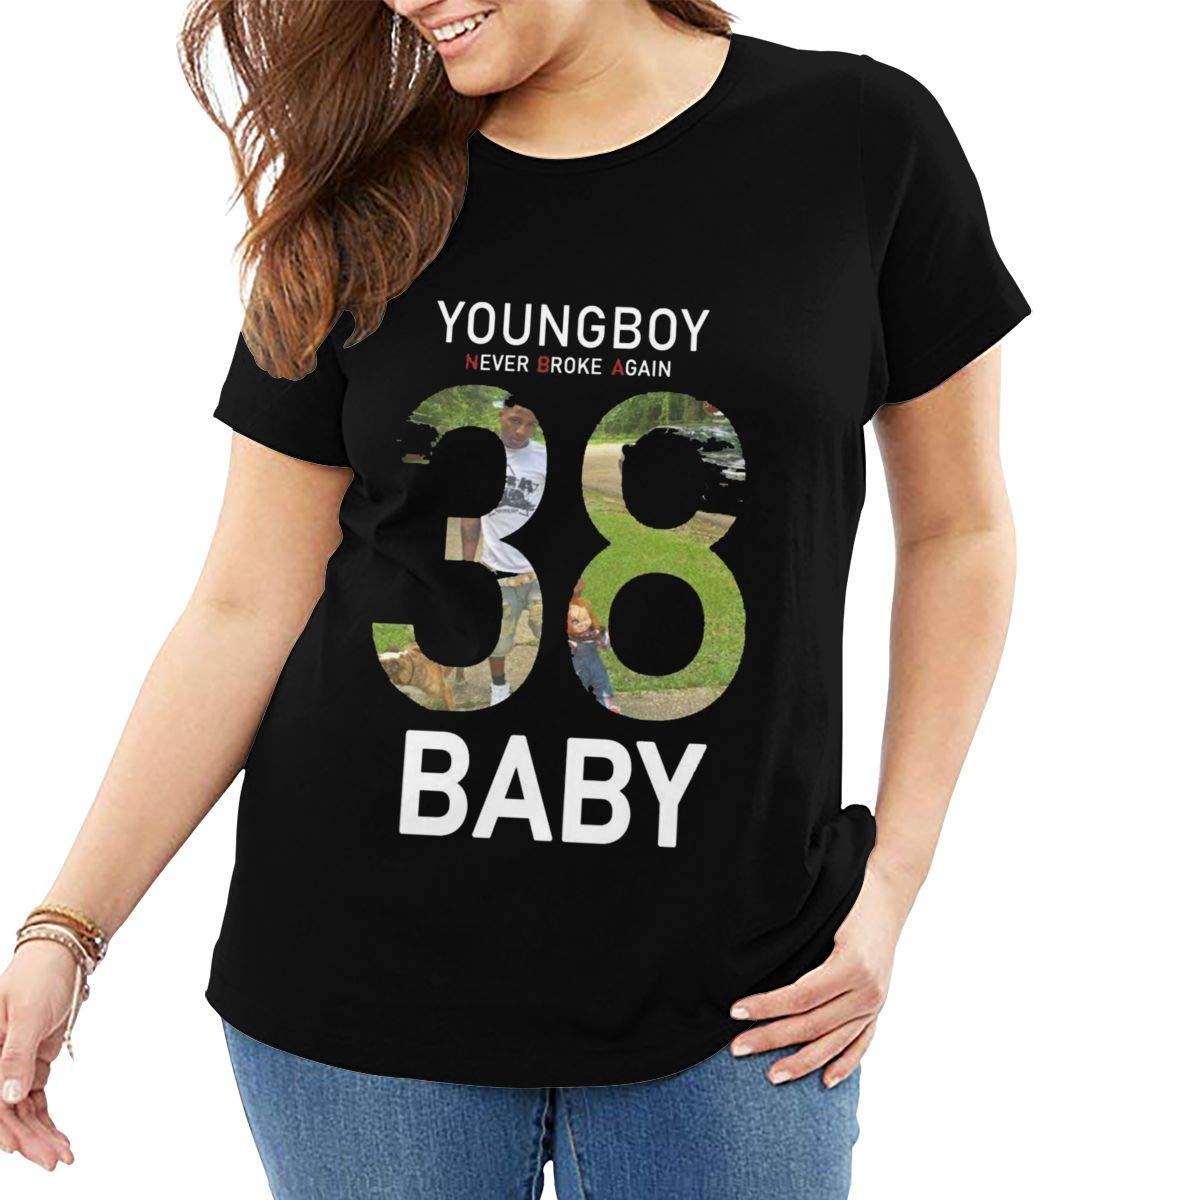 Andeonky Never Broke Again 38 Baby T Shirt Plus T Shirts Best Gift For Mather Grandma Tops